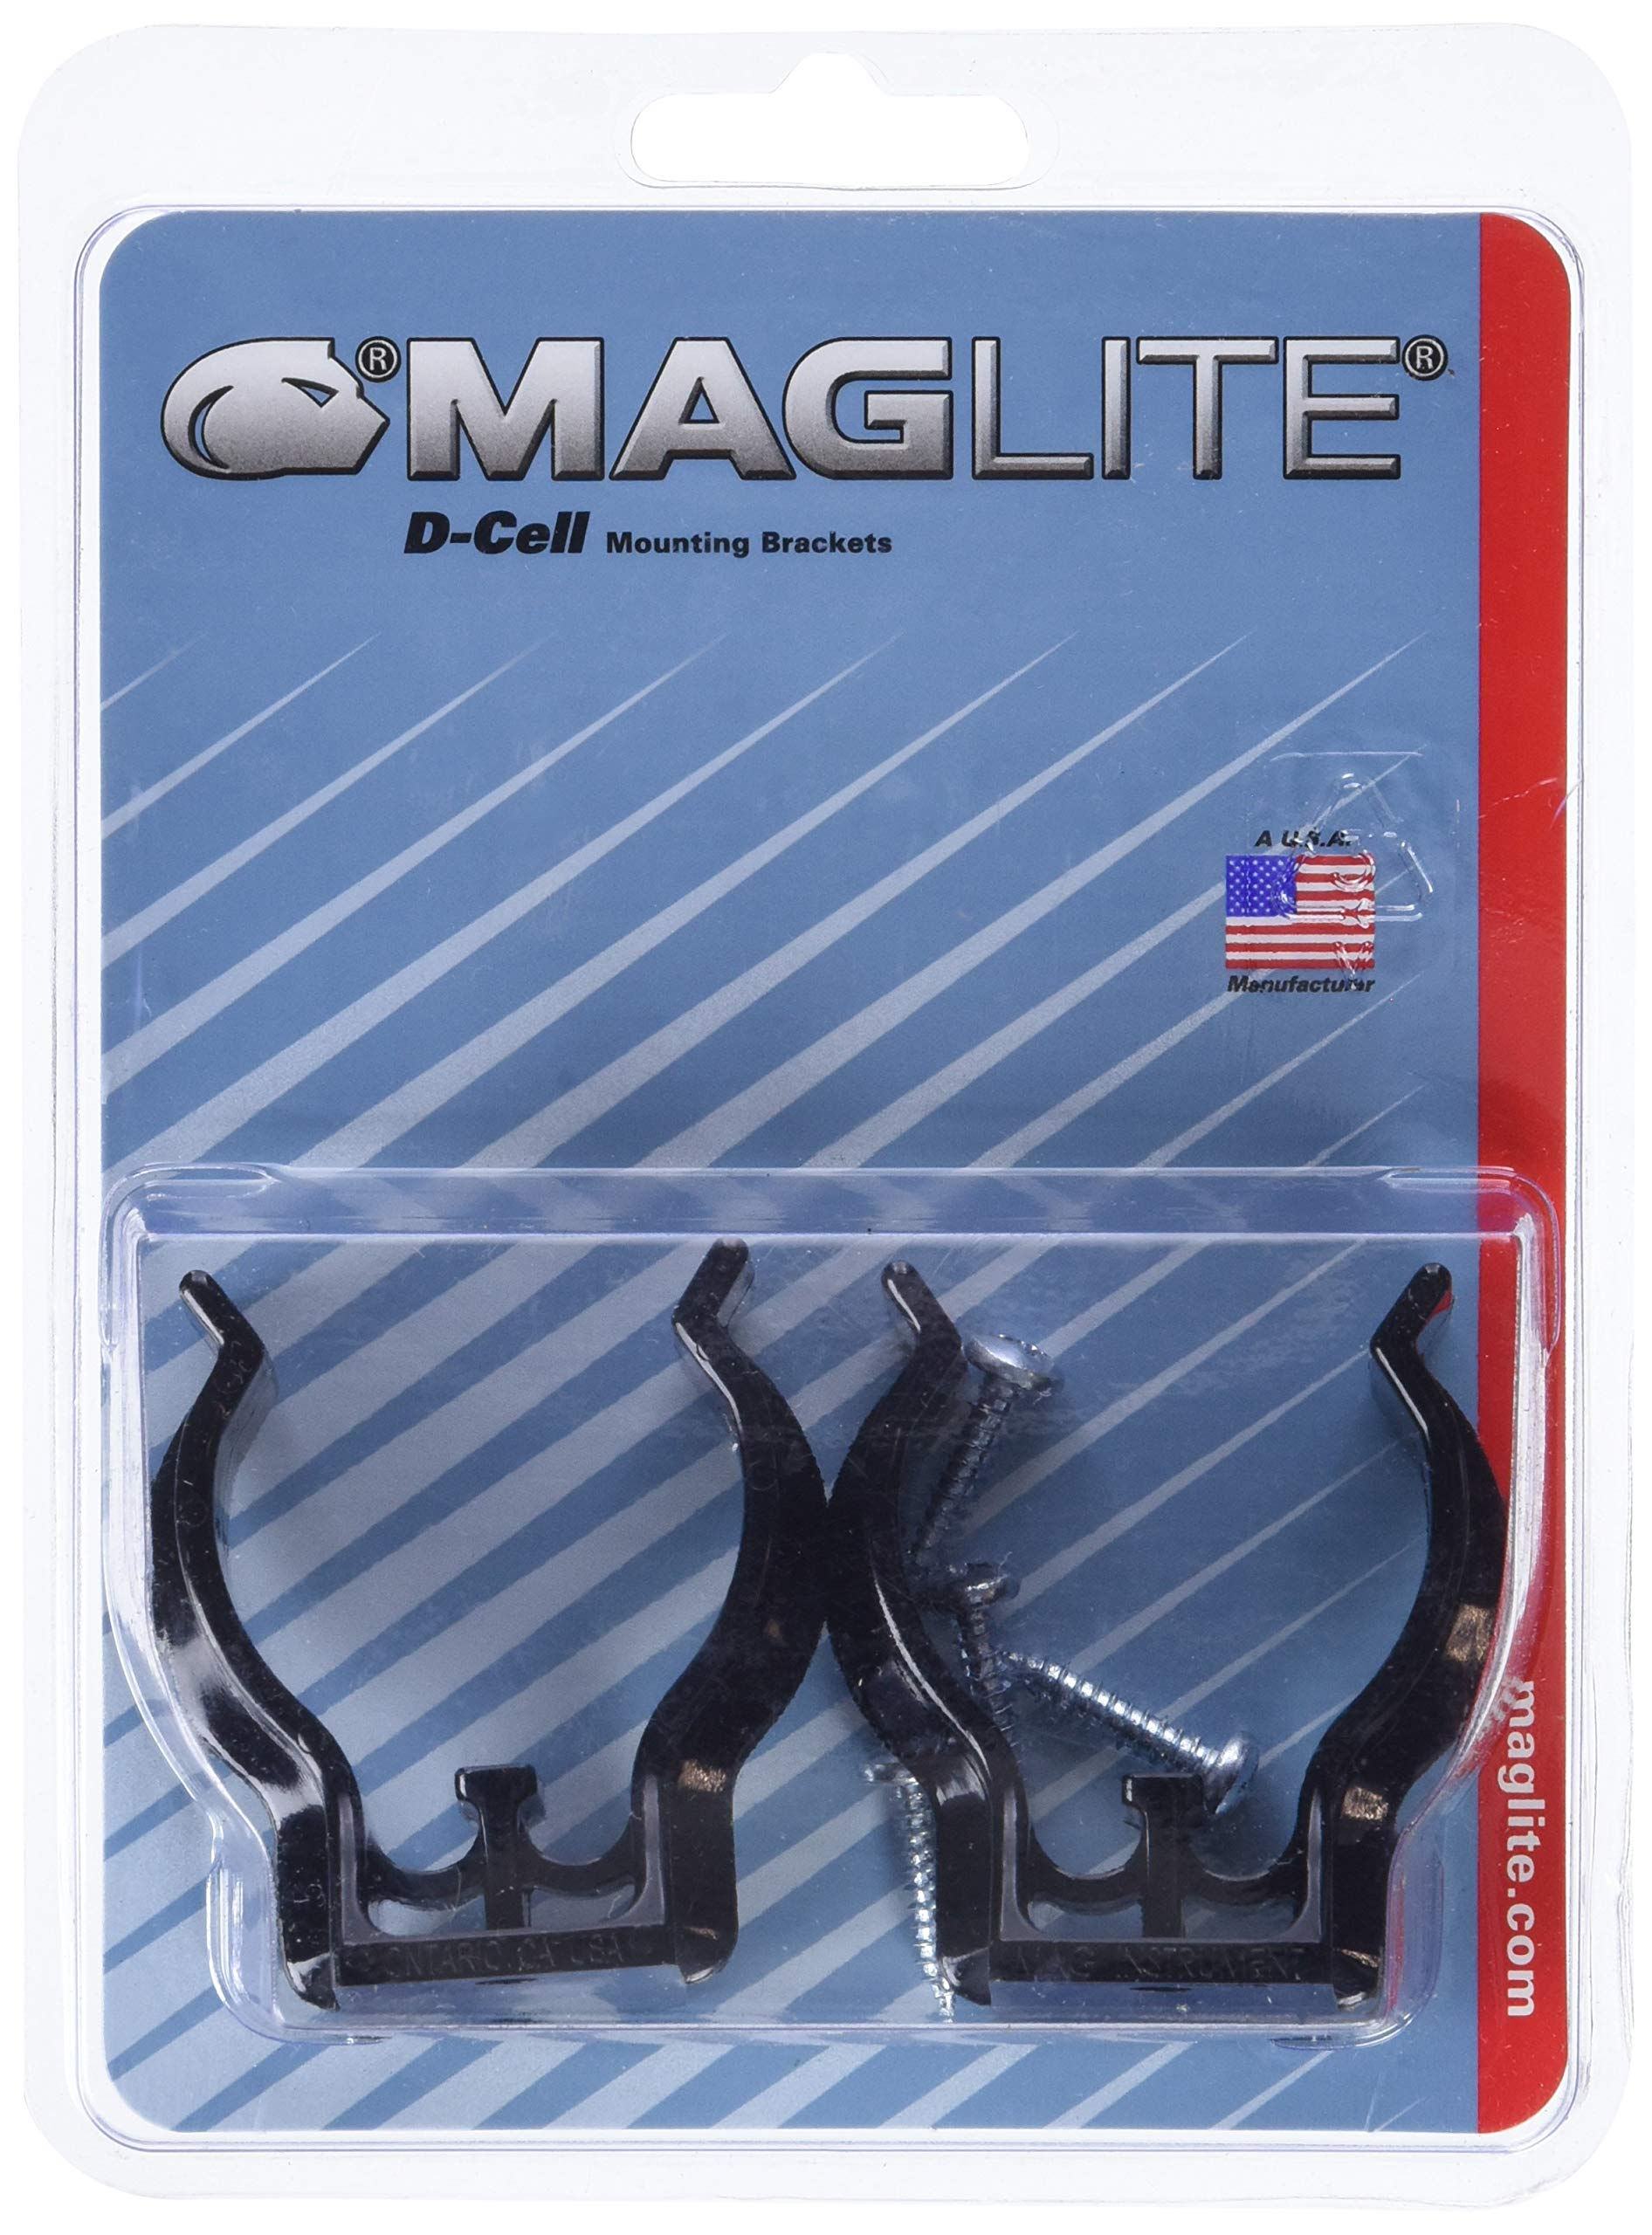 Instrument MAGASXD026 Maglite Mounting Brackets